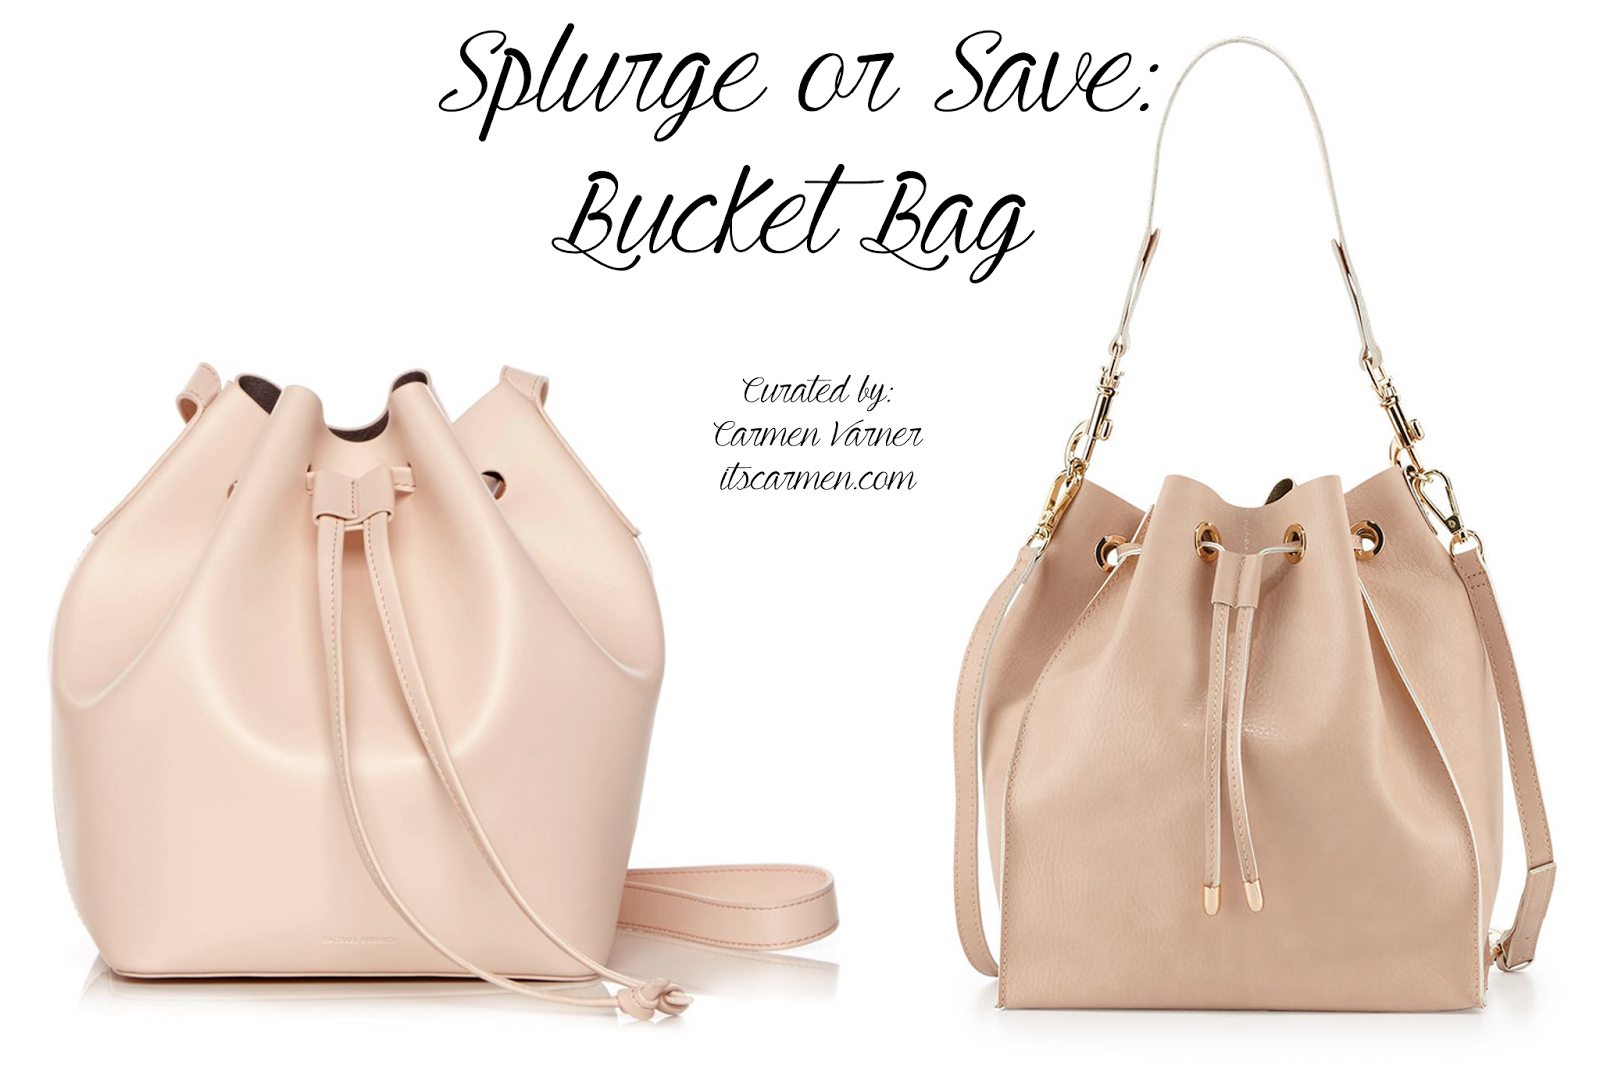 Rachael Ruddick Beach Bucket Bag or Neiman Marcus